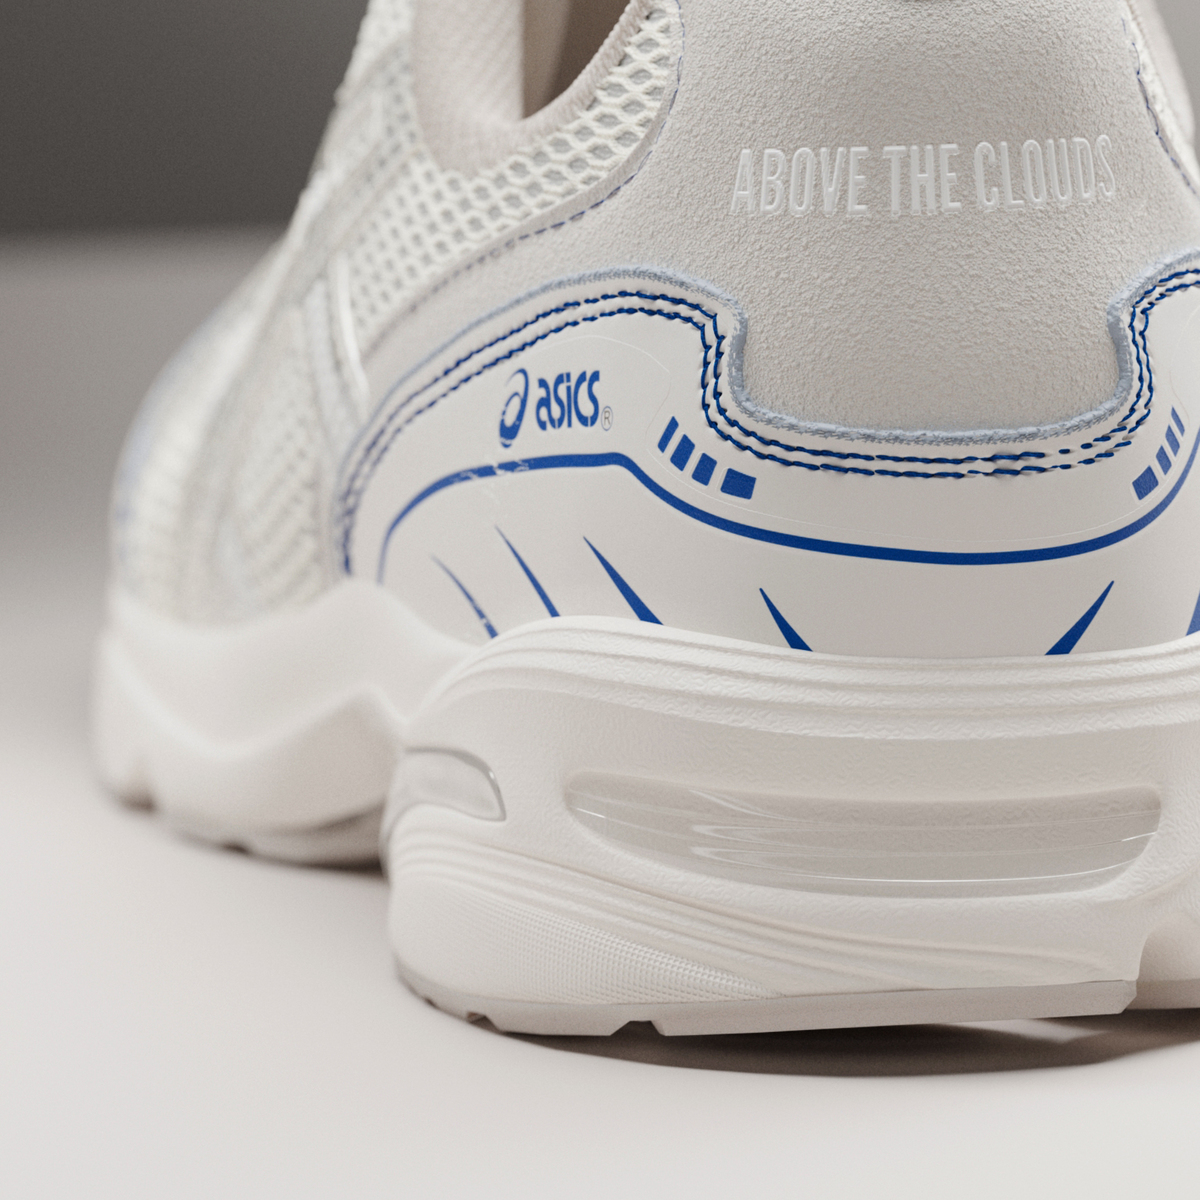 ASICS Gel-1090 x Above The Clouds Collaboration